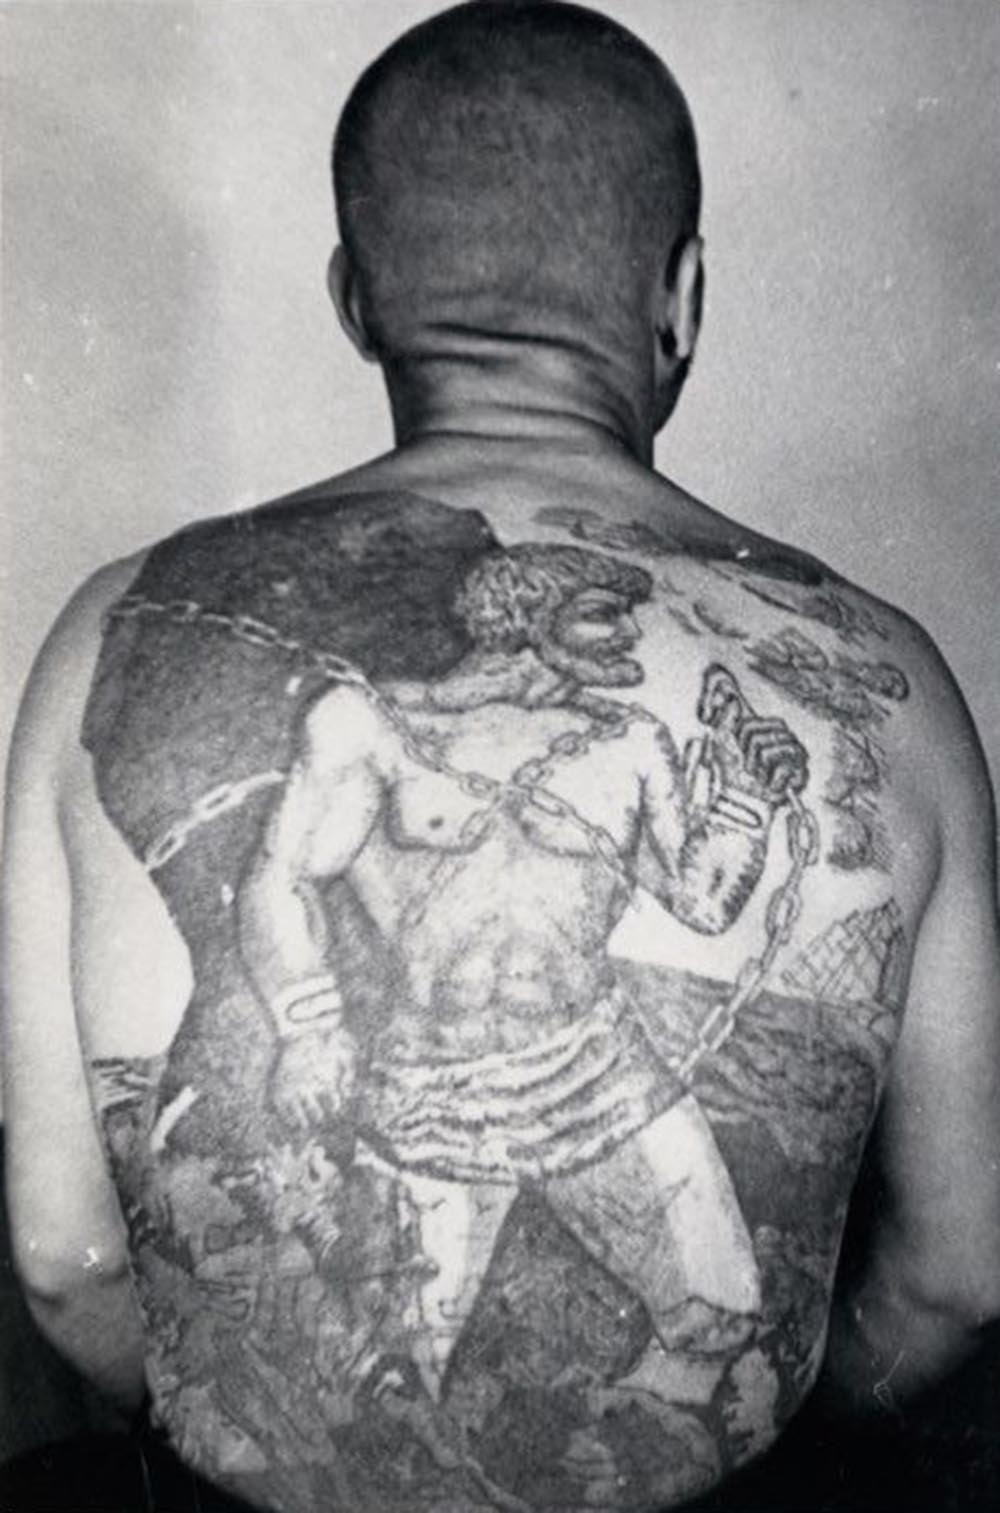 This tattoo is a variation on the myth of Pometheus, who, after tricking Zeus, is chained to a rock in eternal punishment. The sailing ship with white sails means the bearer does not engage in normal work; he is a traveling thief prone to escape.